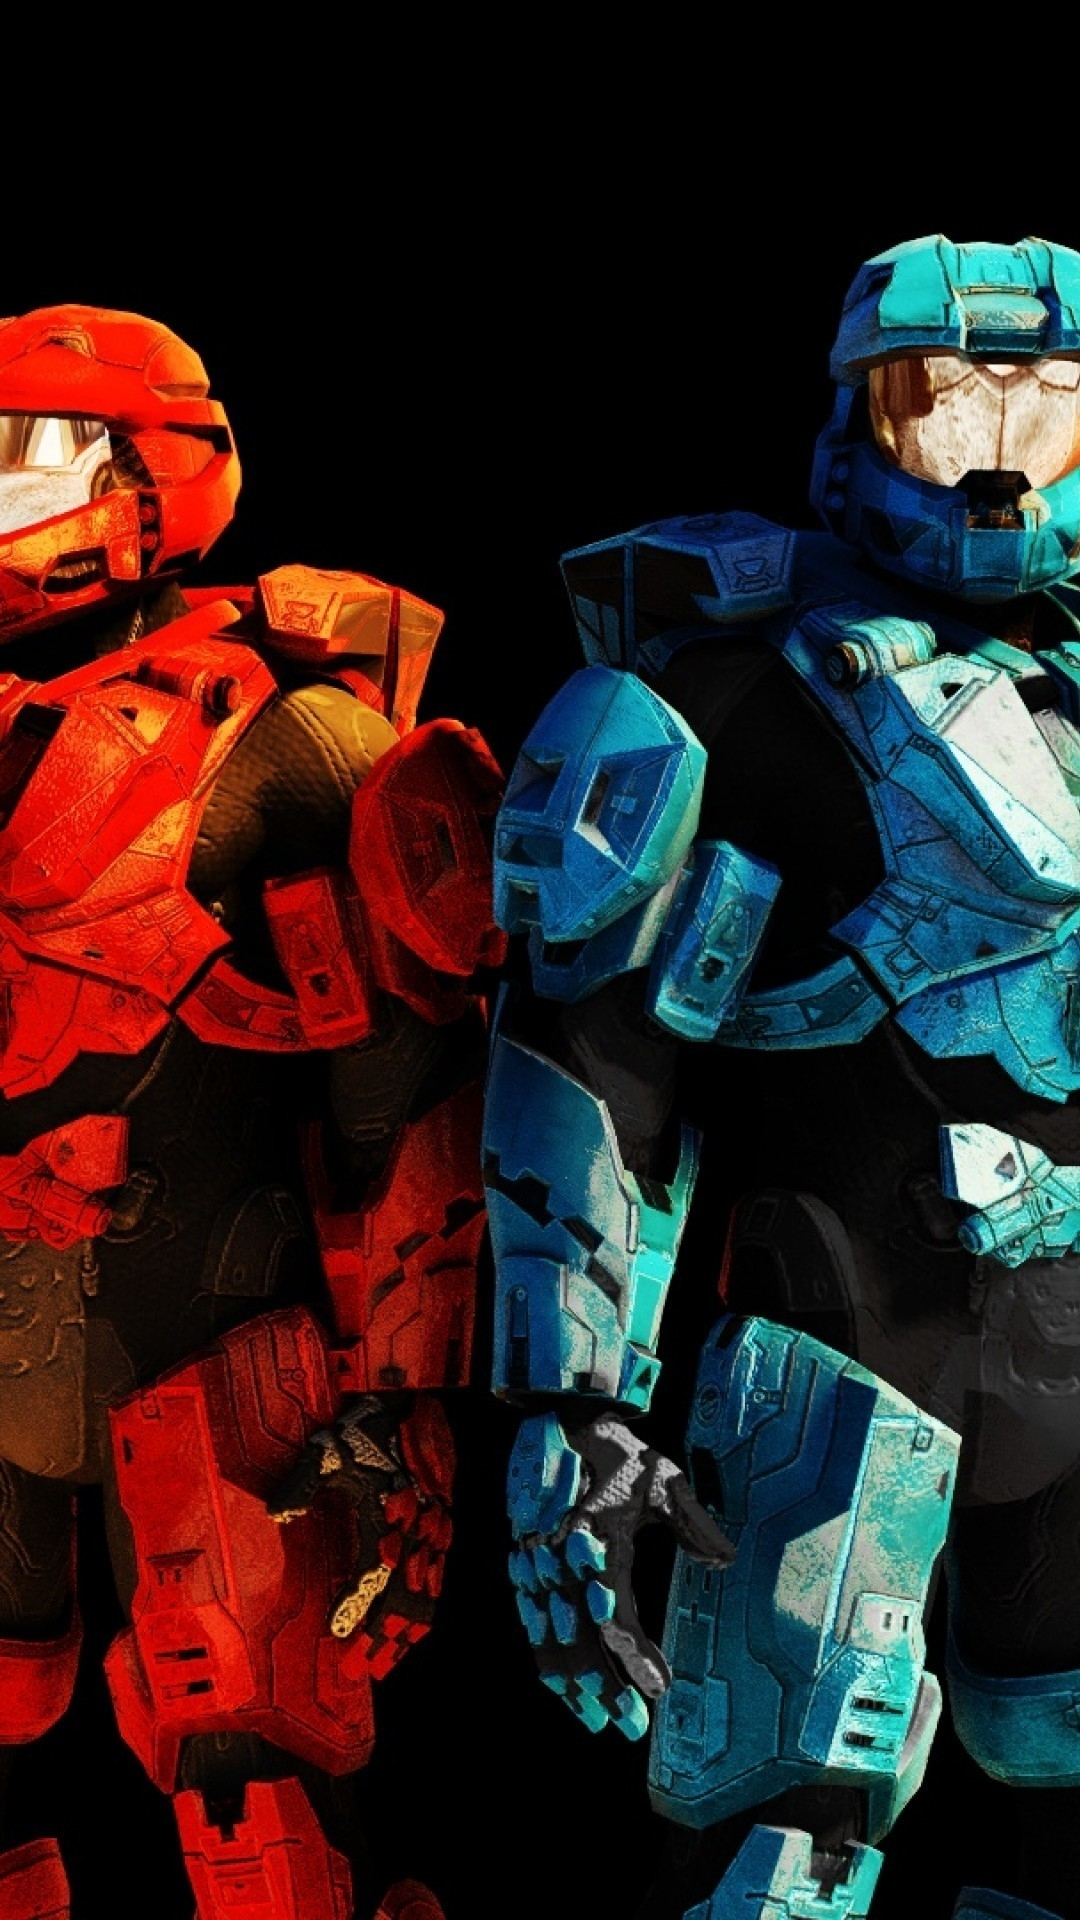 red vs blue iphone 6 wallpaper - hdwall